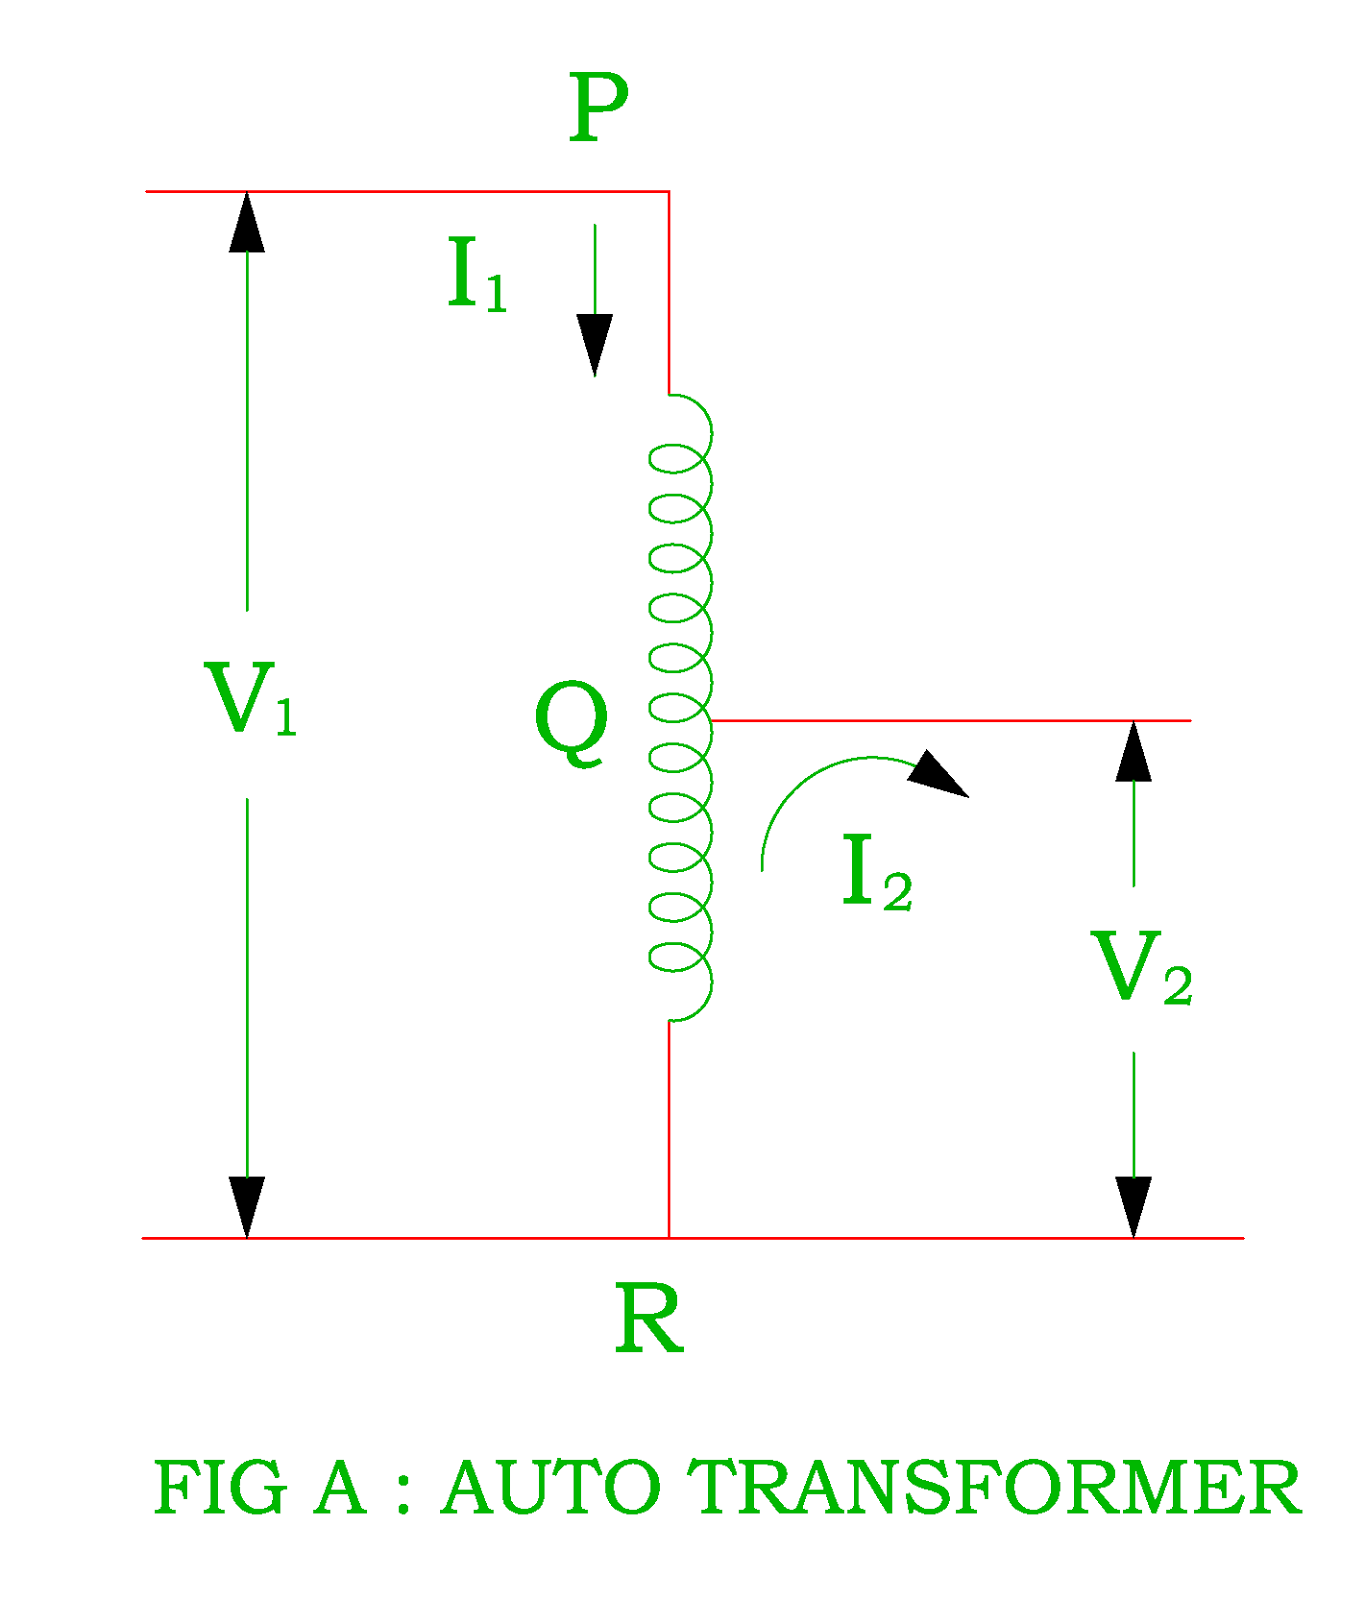 Auto Transformer Korndrfer Autotransformer Starter Wikipedia The Free Encyclopedia Working Of Saving In Copper Material 1365x1600